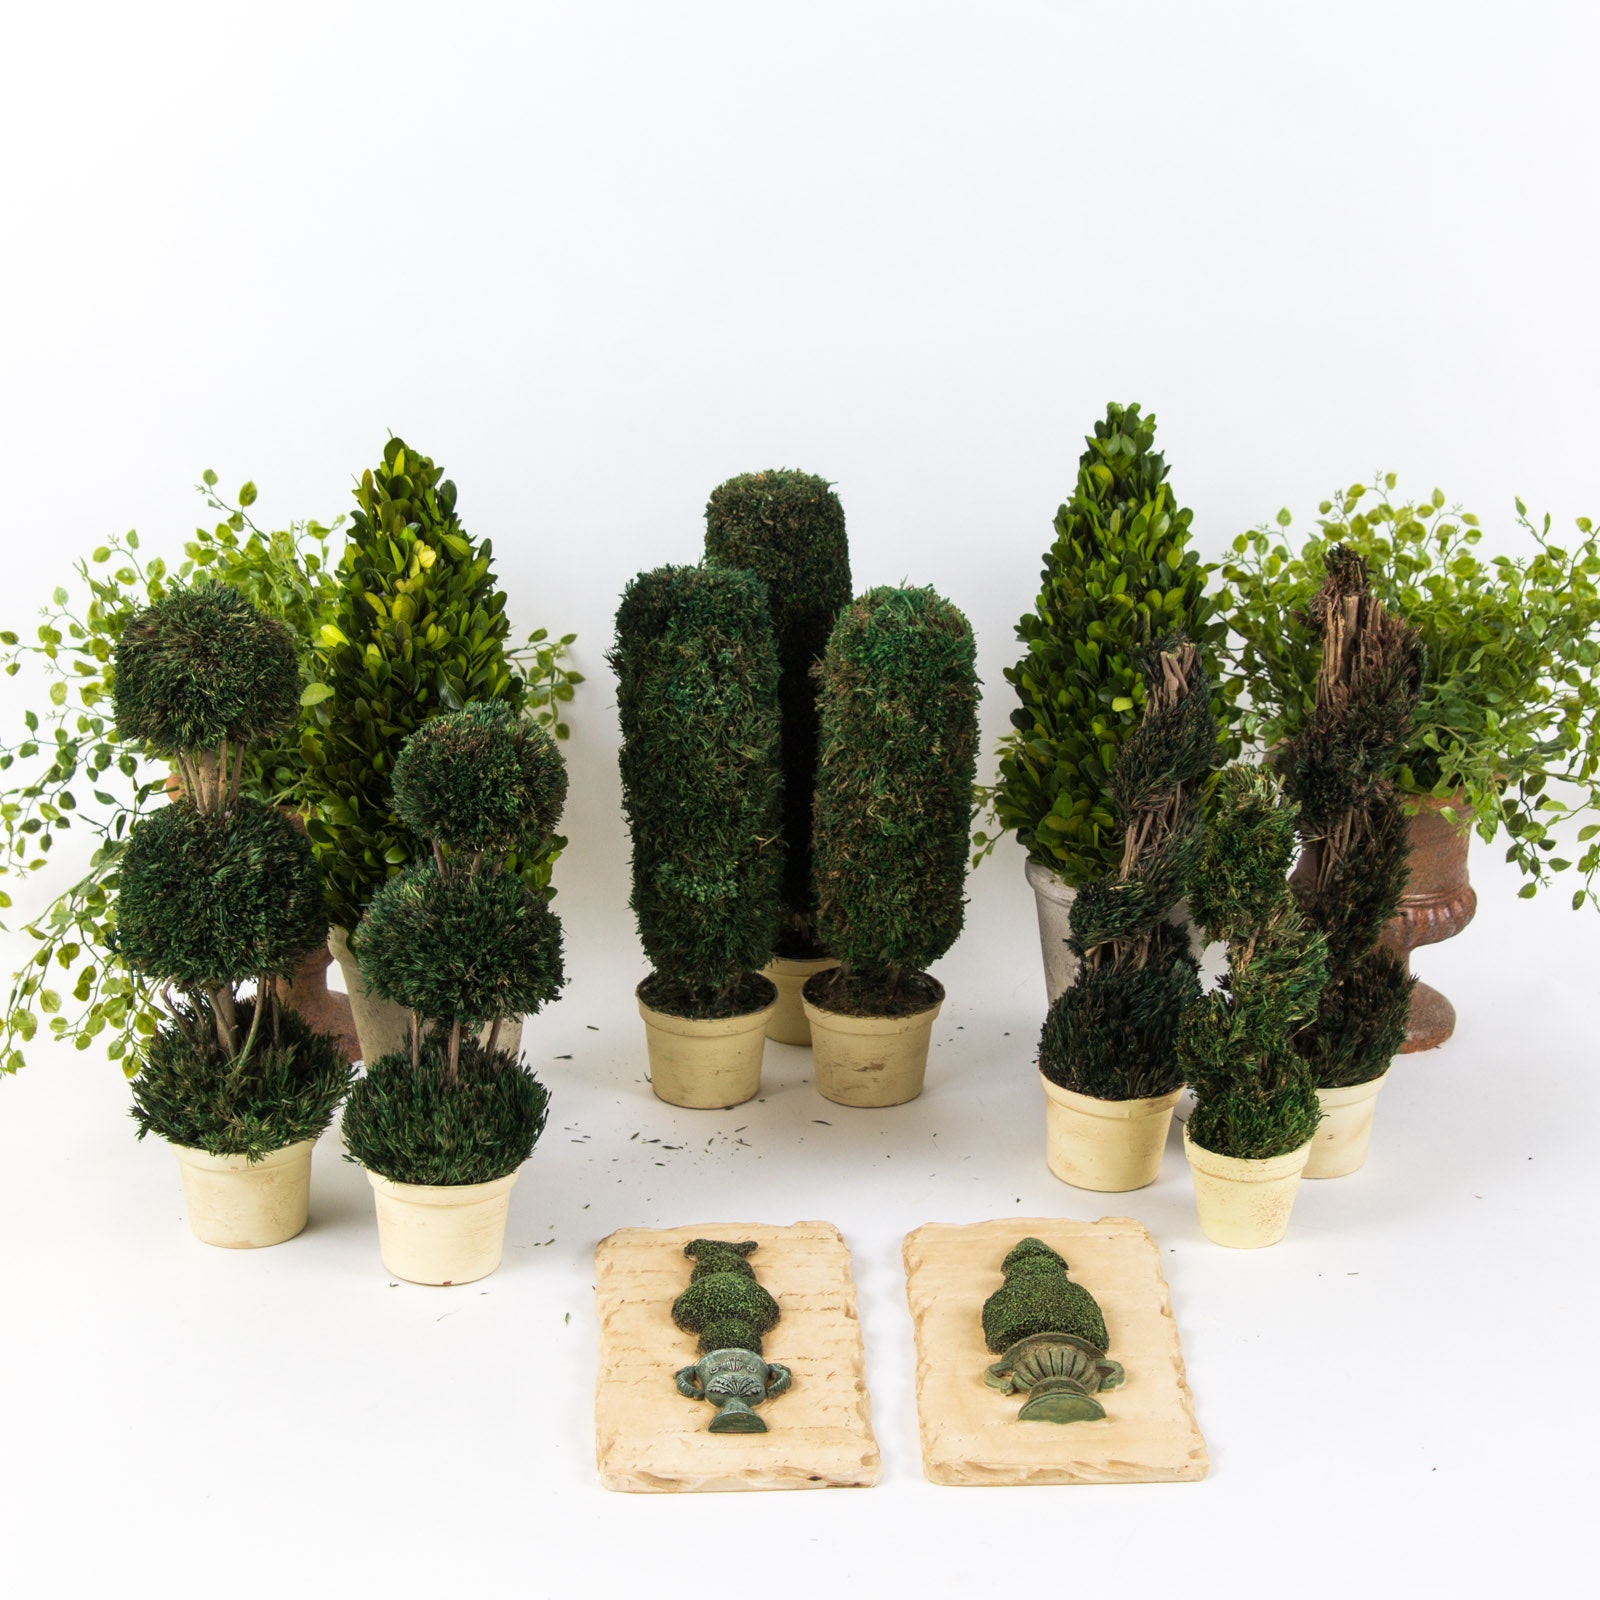 Assortment of Artificial Plants and Plant Themed Decor